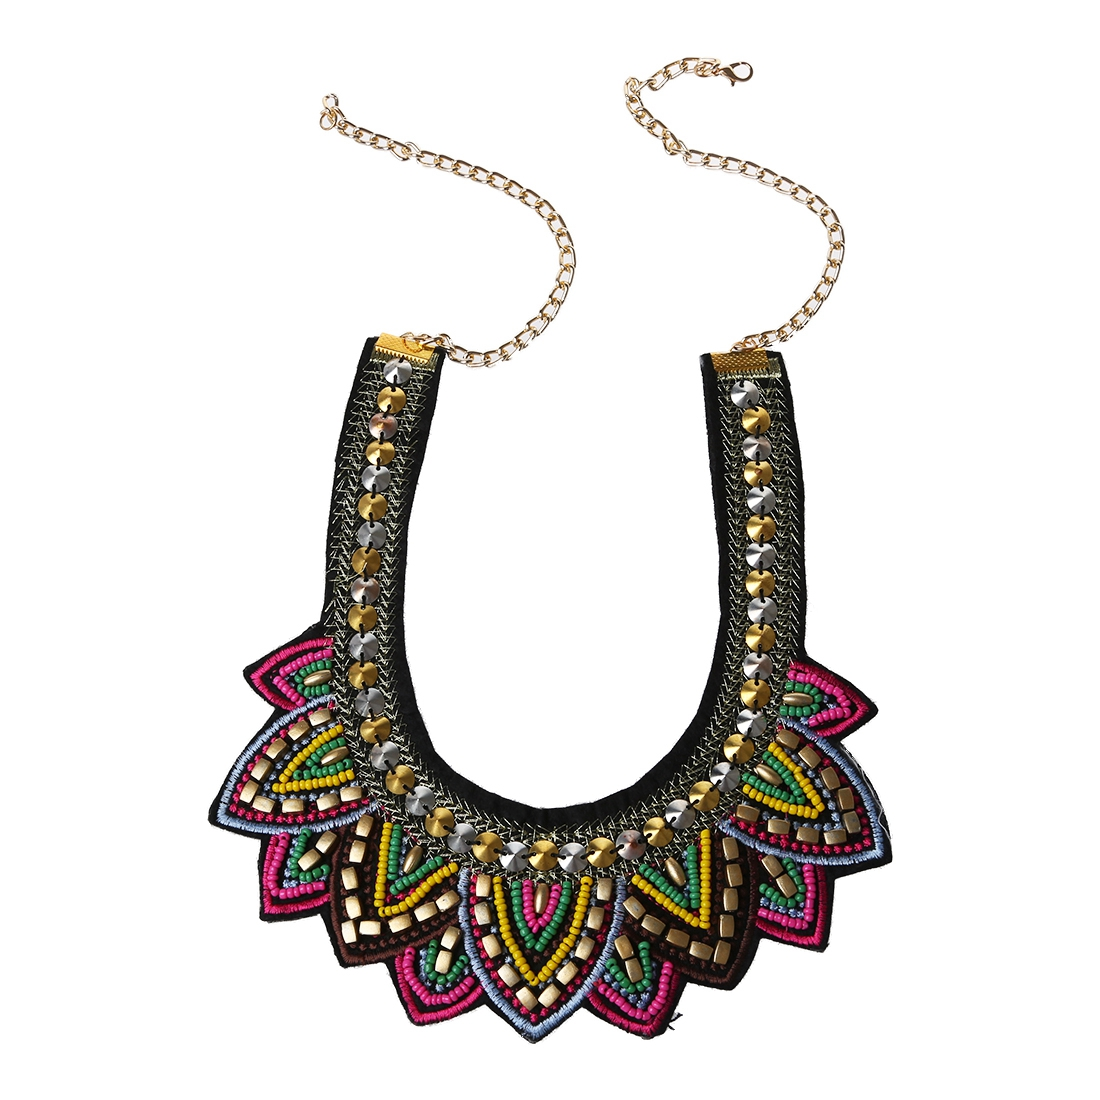 Handmade Cloth Tailor Colorized Resin String Ethnic Chokers Necklaces Charming Collar Statement Jewelry mix multicolor